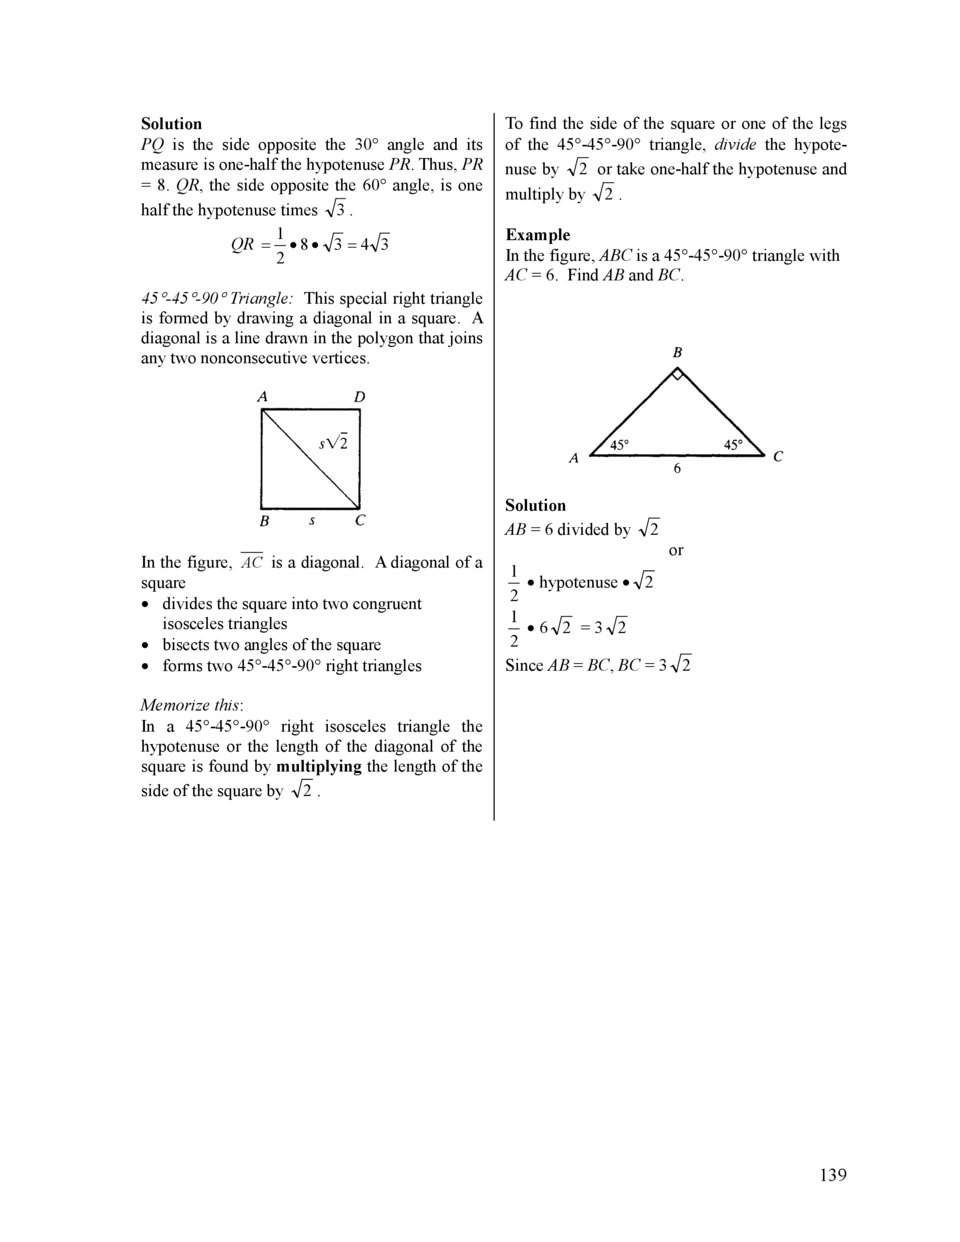 Solution PQ is the side opposite the 30   angle and its measure is one-half the hypotenuse PR. Thus, PR   8. QR, the side ...